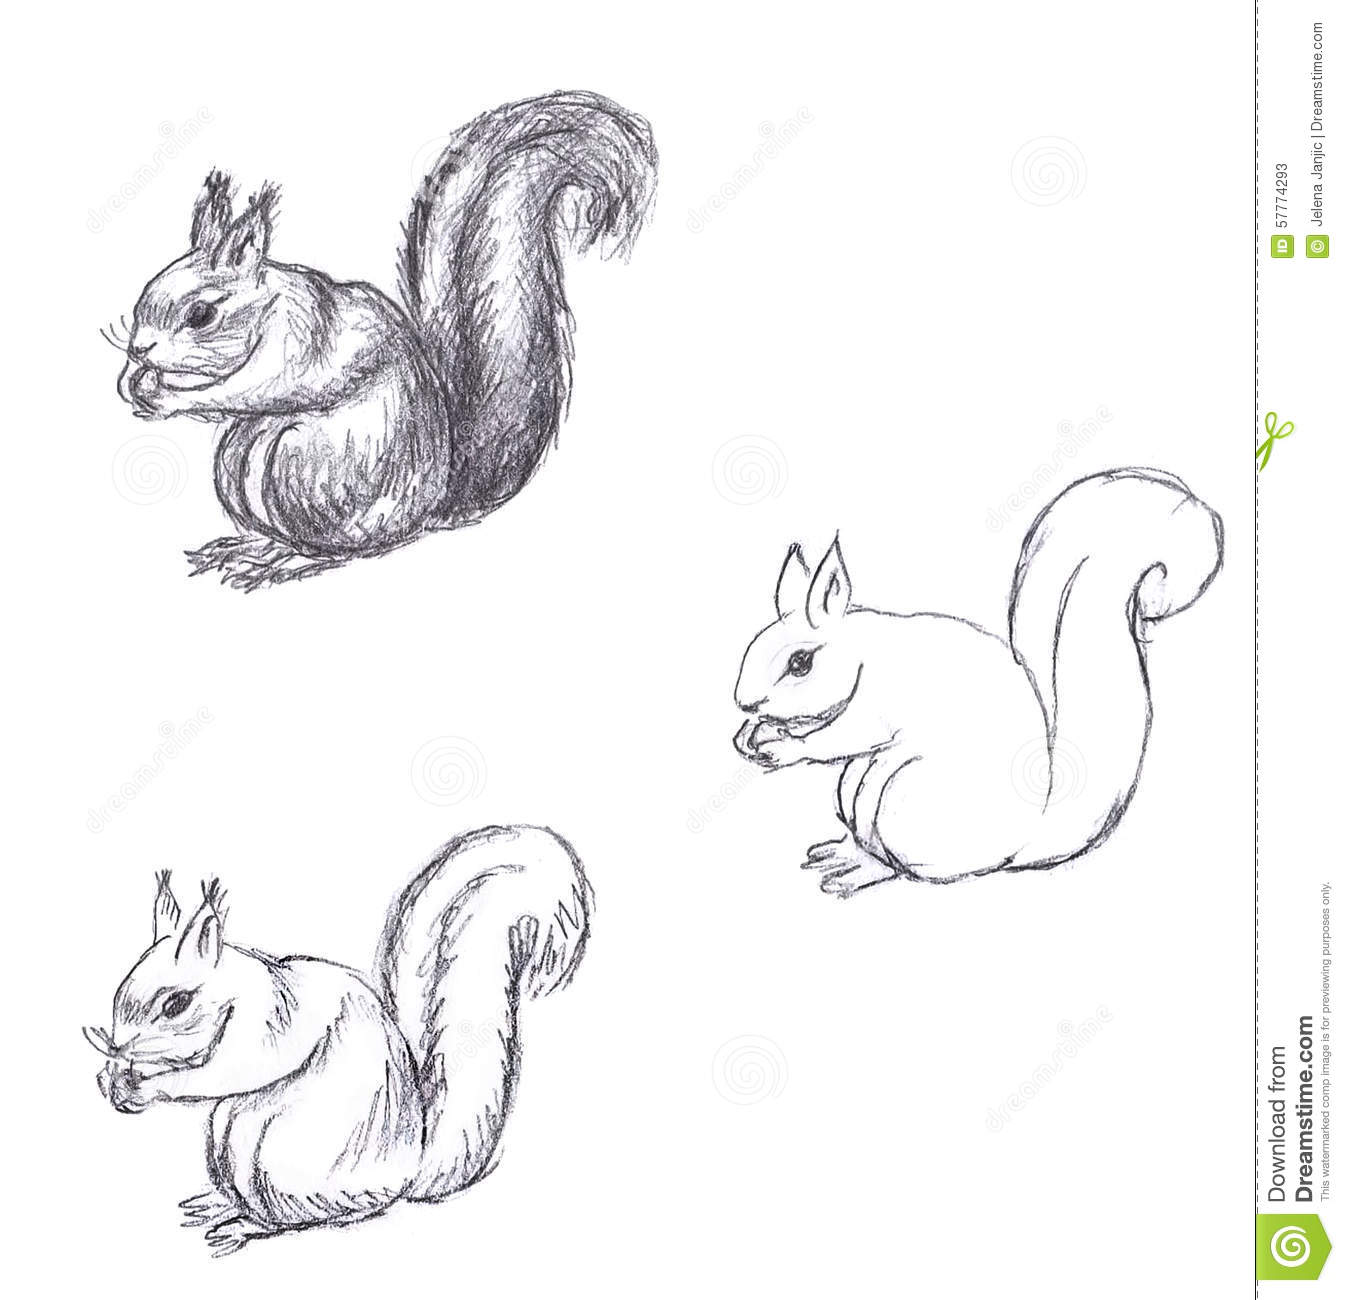 Pencil Drawing Of Squirrel On White Background Stock